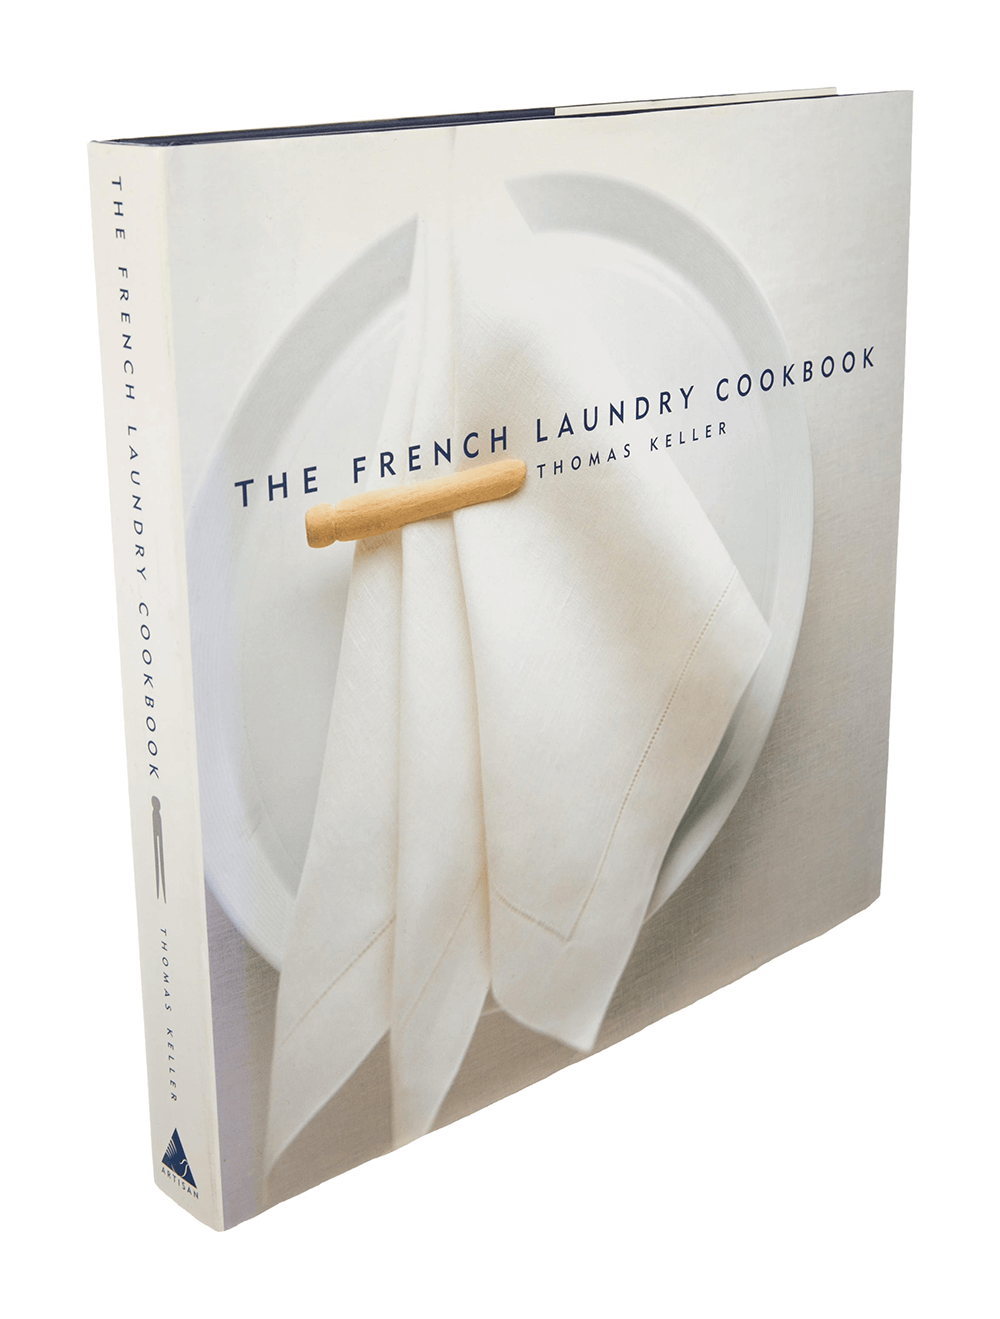 The French Laundry Cookbook Review